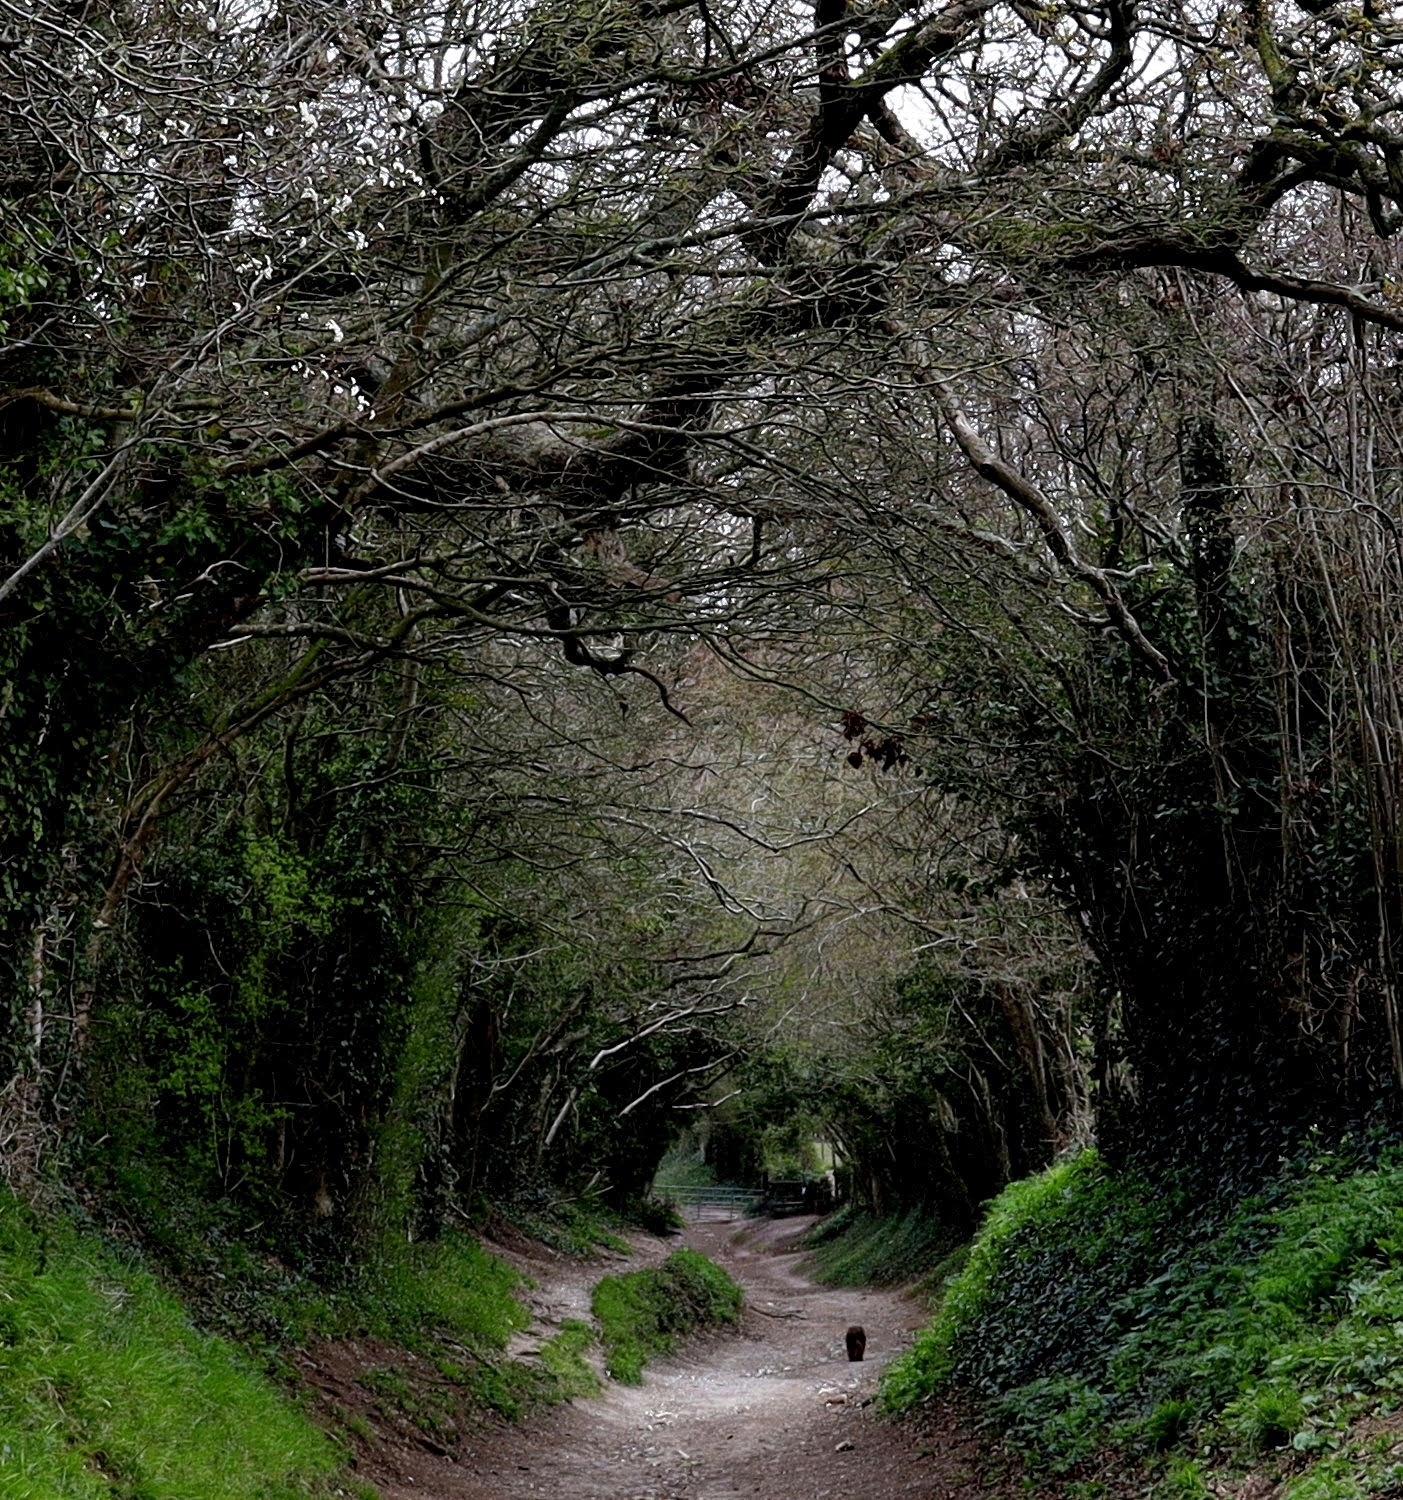 A tunnel of trees that line the path to Halnaker Mill. A sussex spaniel is walking down the path.